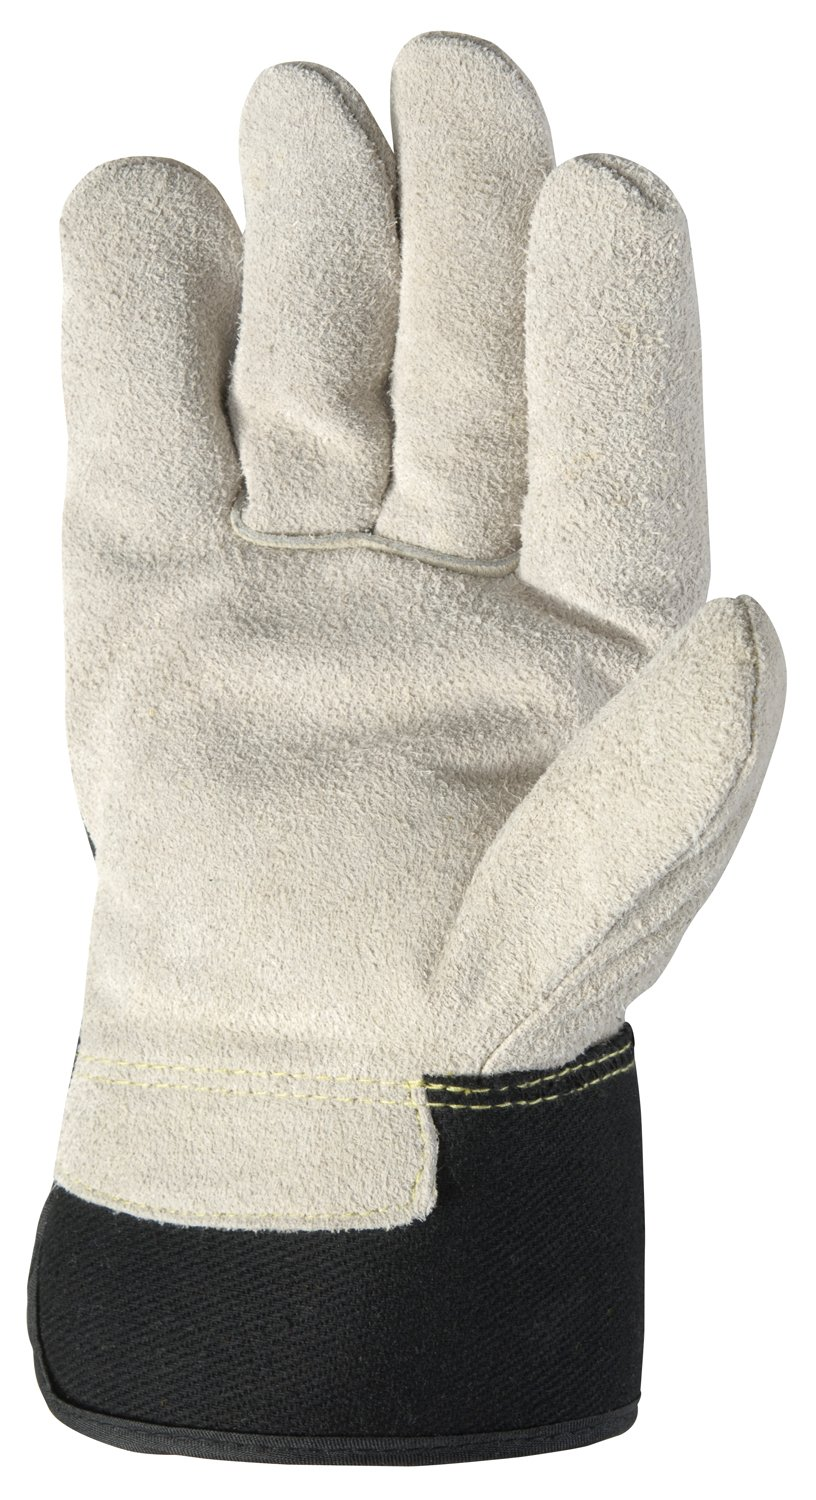 Insulated leather work gloves amazon - Wells Lamont Leather Work Gloves With Safety Cuff Insulated Palm Suede Extra Large 5130xl Insulated Work Gloves Amazon Com